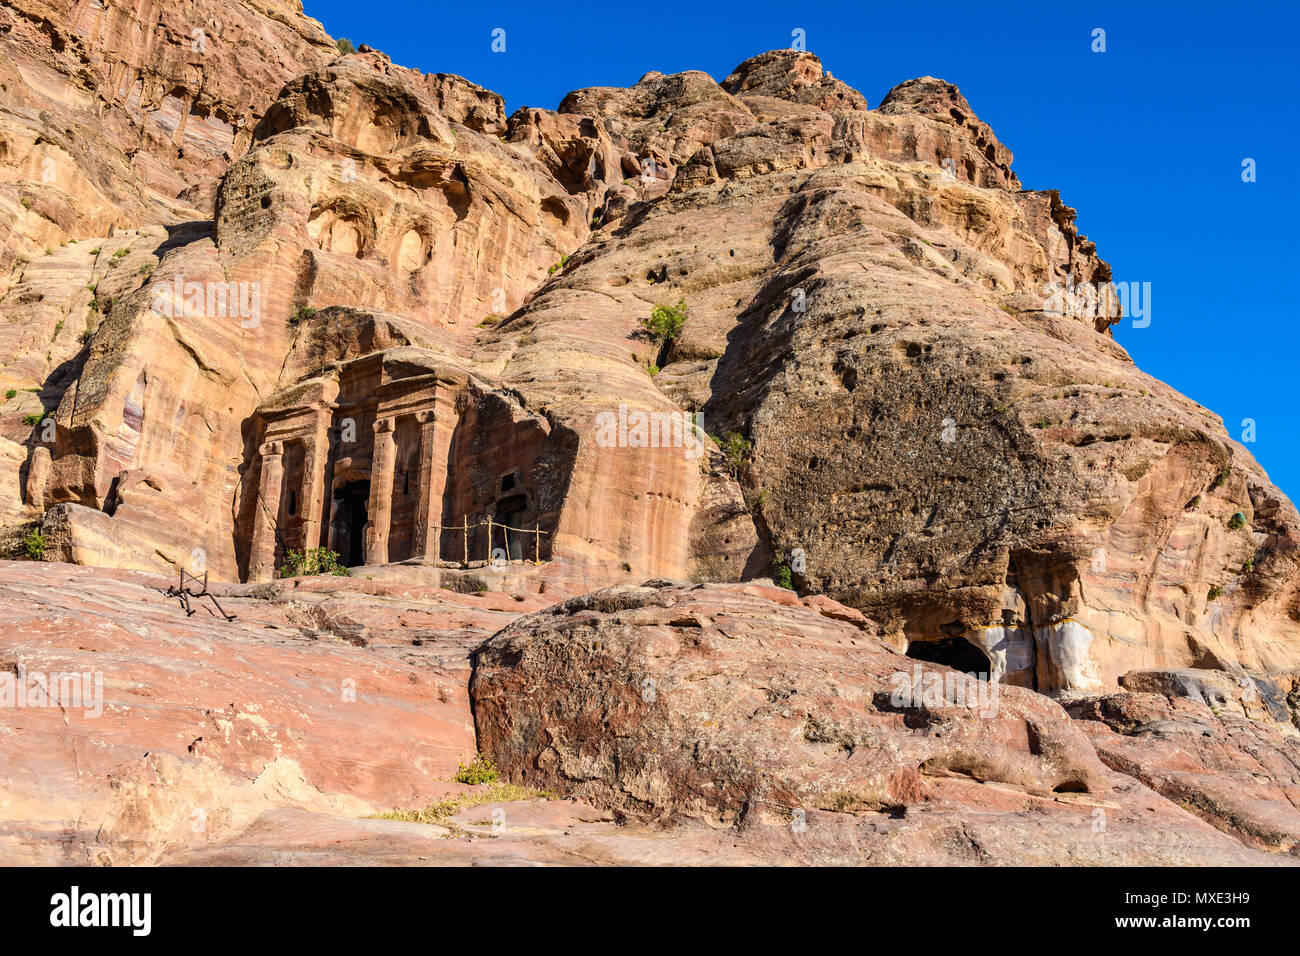 Old tombs at sunset in the Lost City of Petra, Jordan - Stock Image